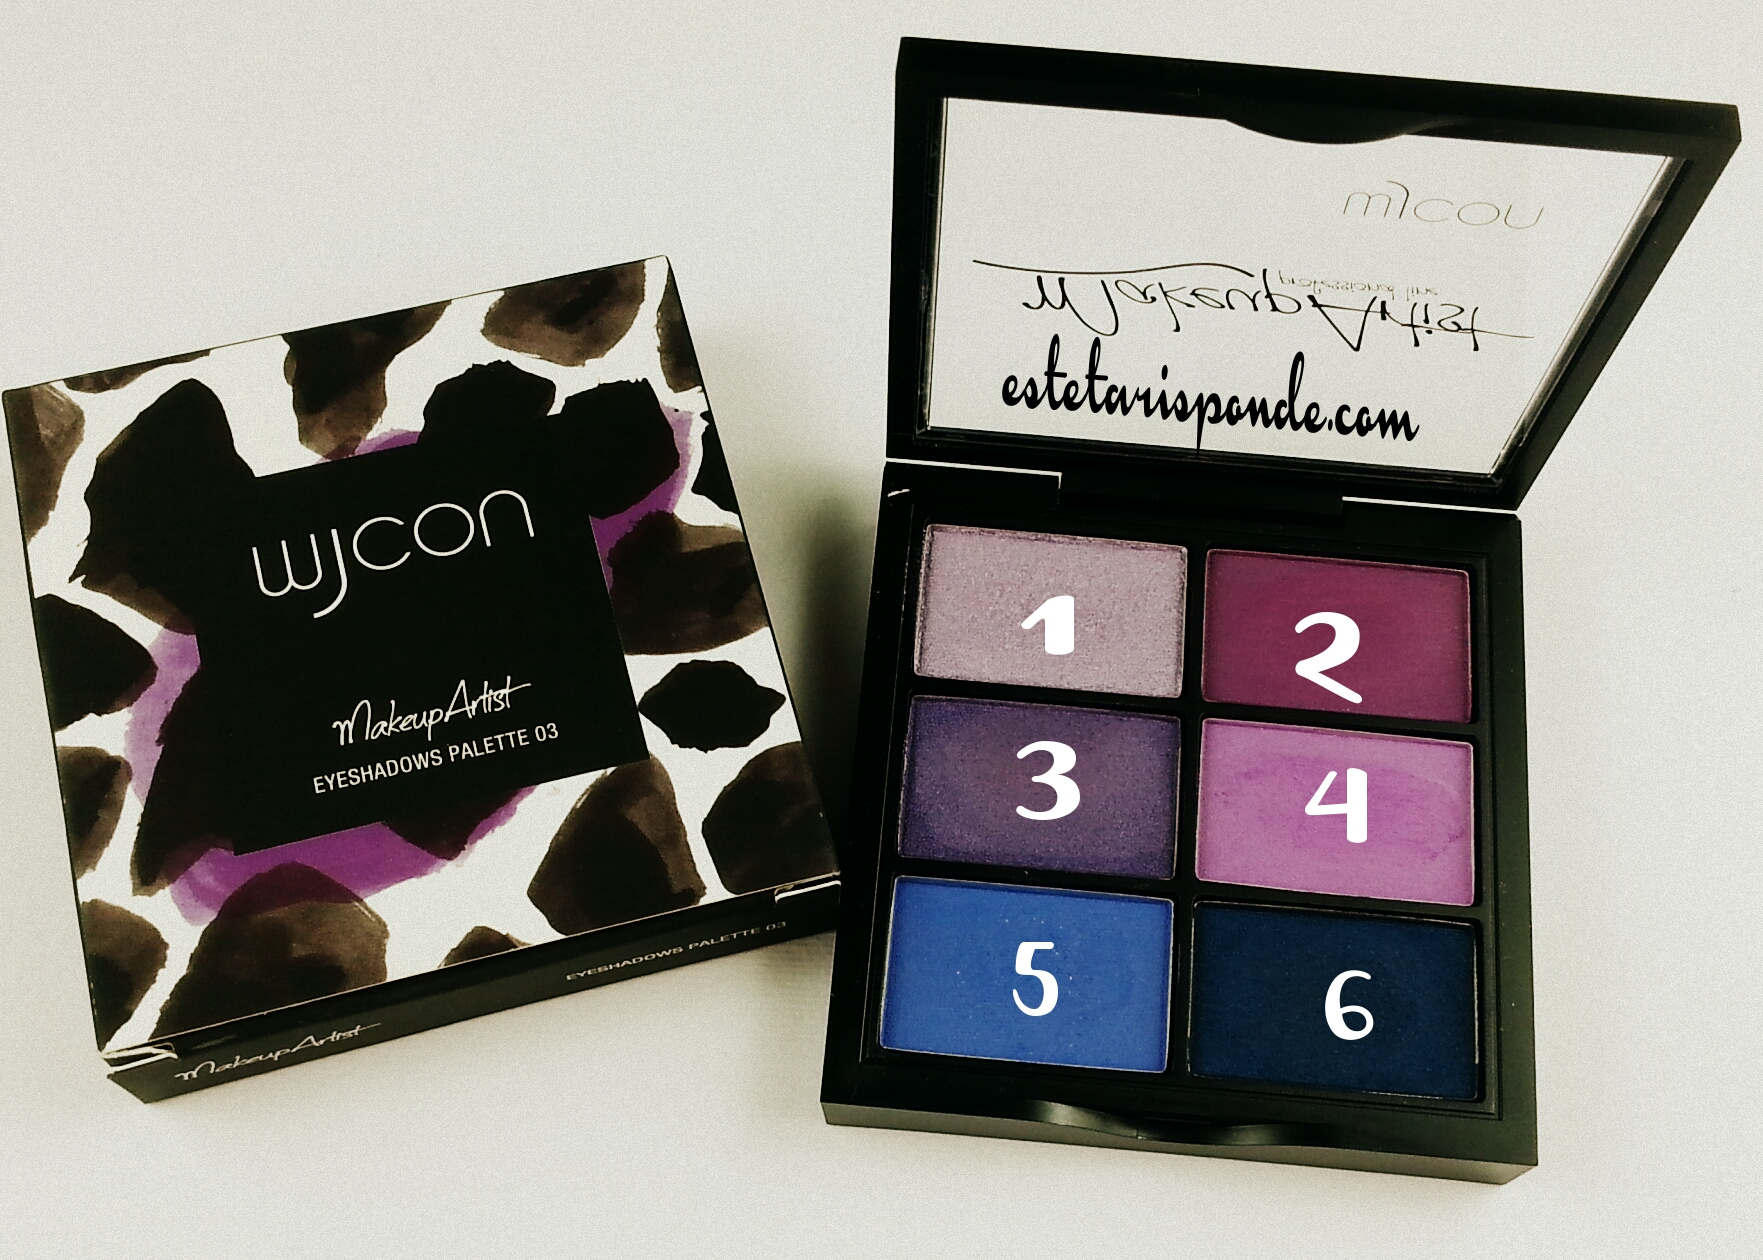 Wjcon Makeup Artist collection - MakeUp Artist Eyeshadows Palette - swatches